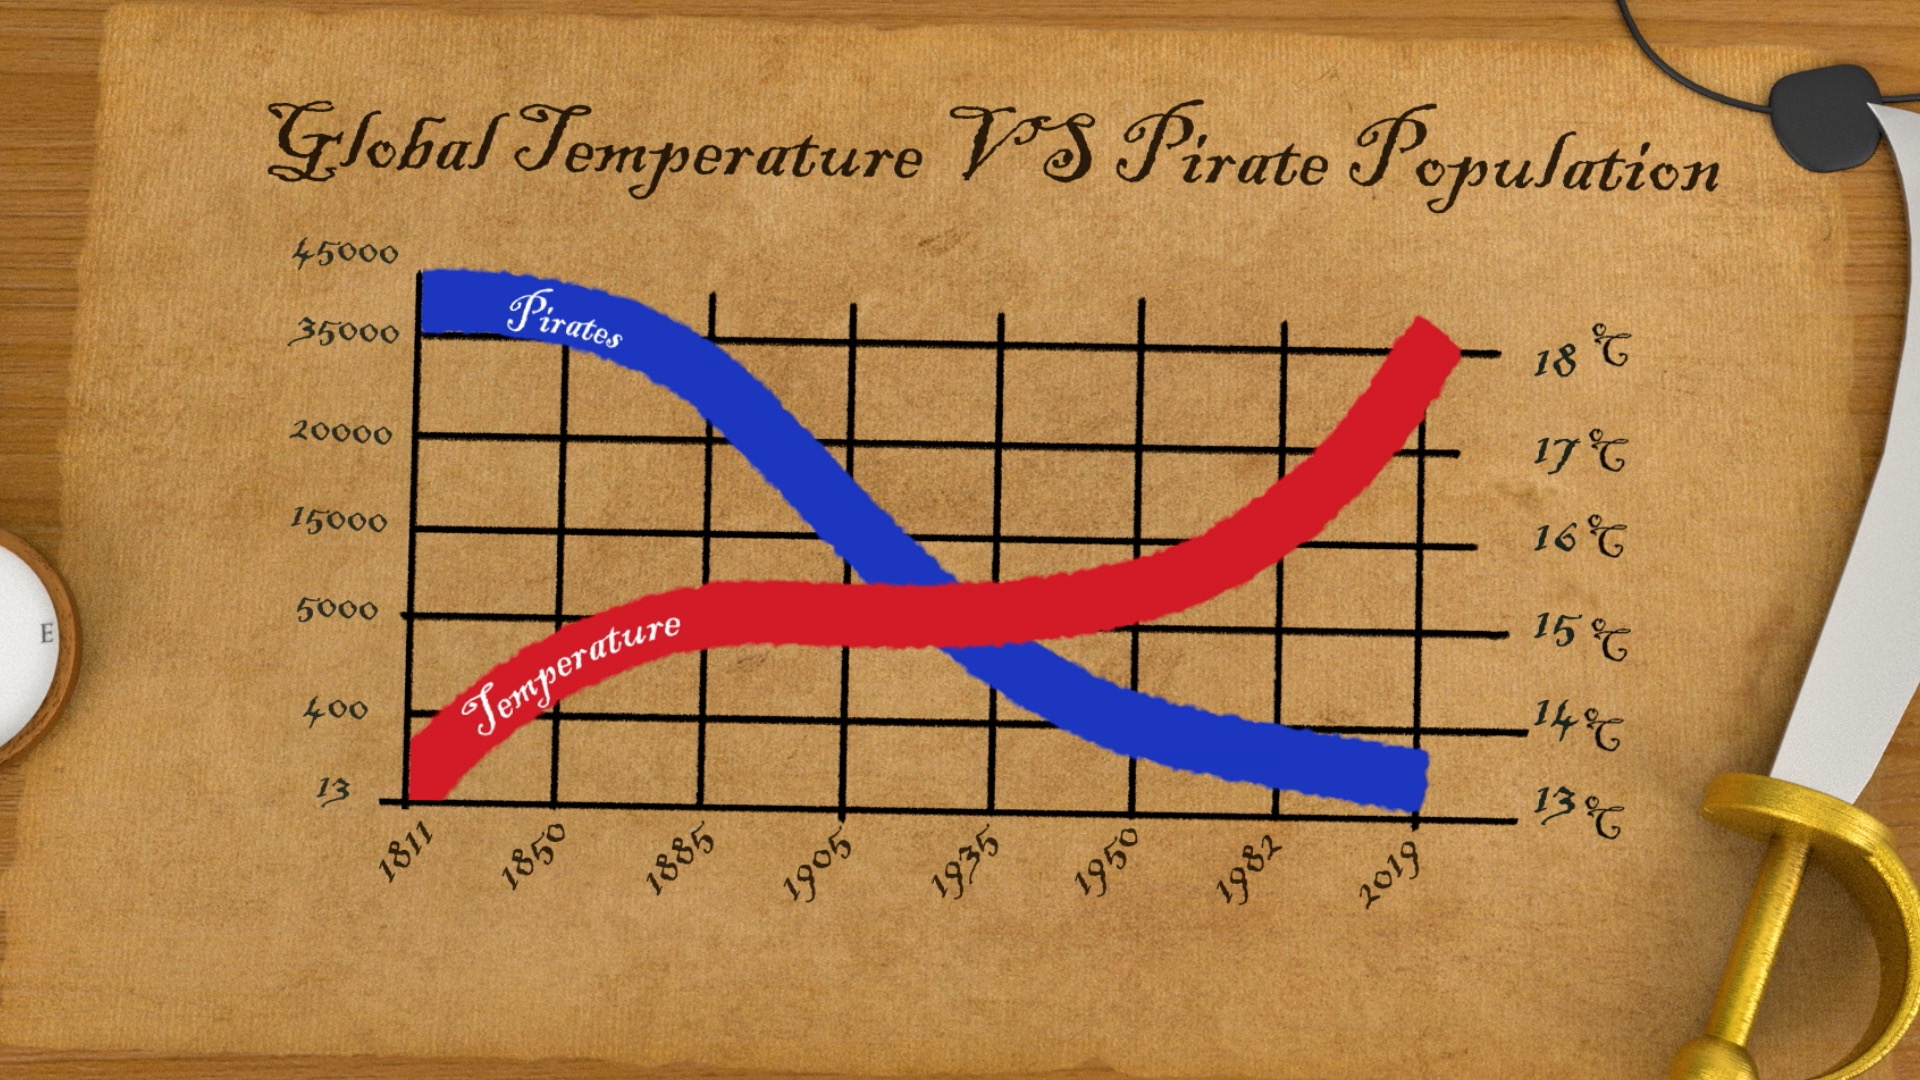 As the pirate population decreases, the earth gets warmer…coincidence?  I think not.